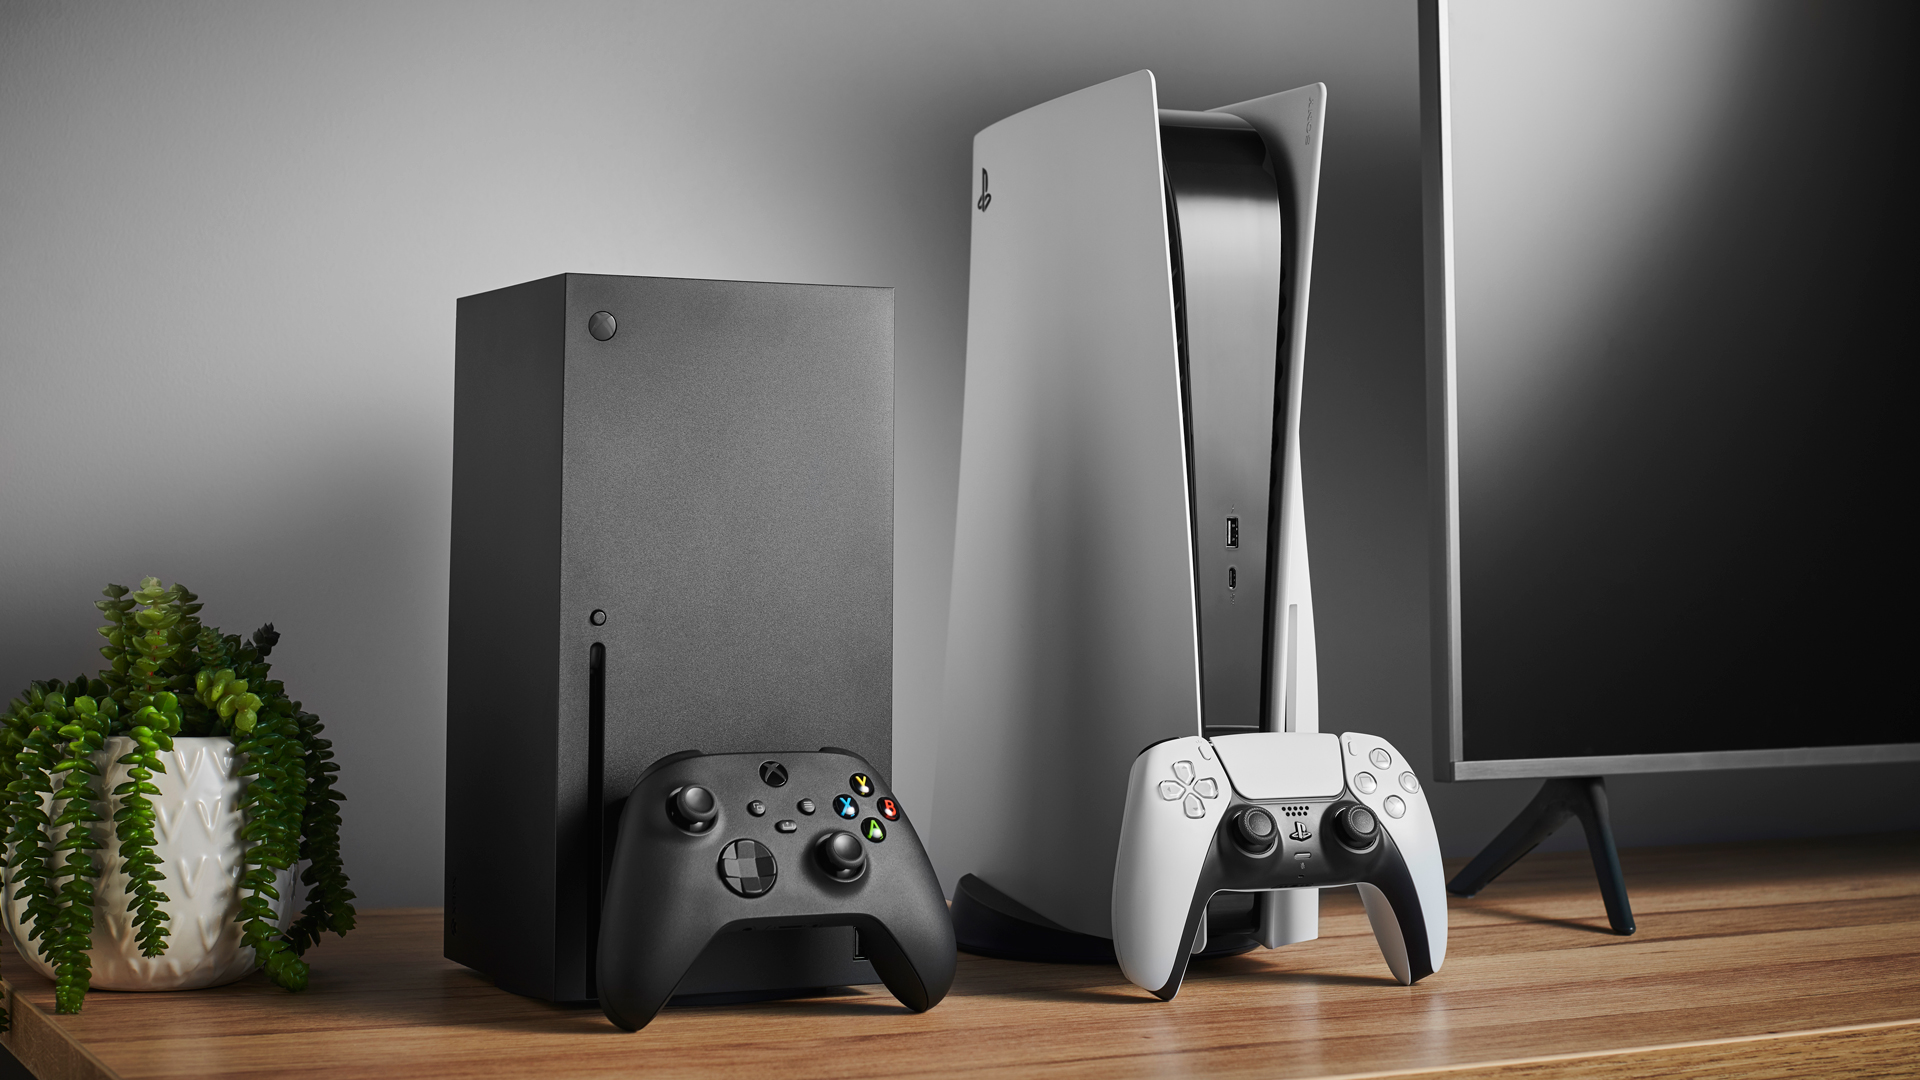 The Xbox Series X and PS5 respectively.